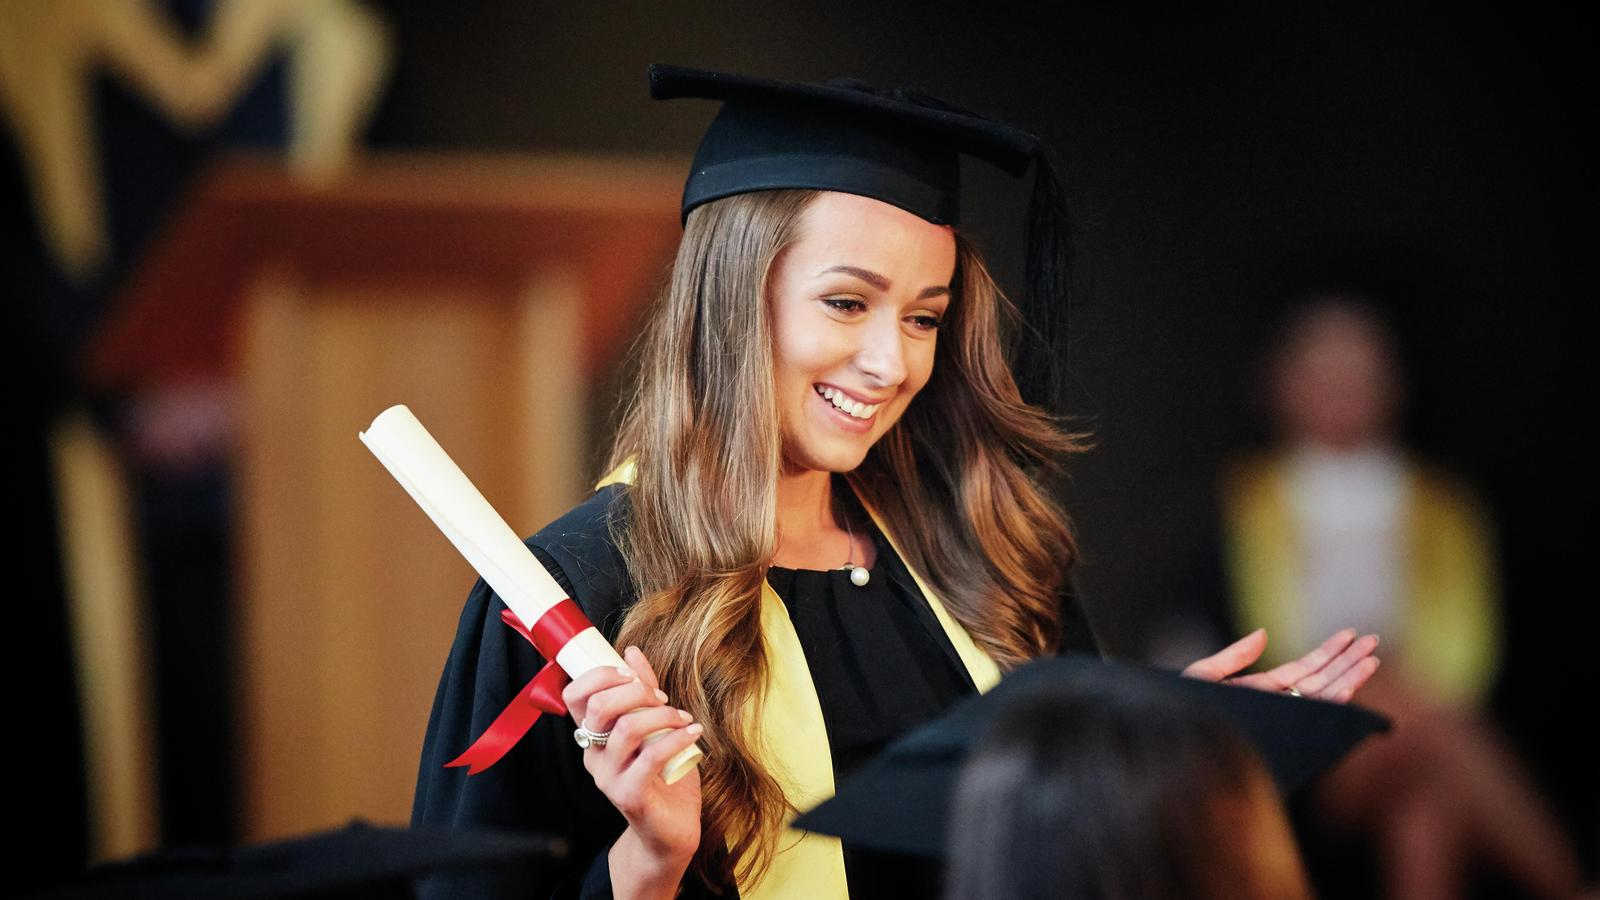 A woman wearing a mortarboard and gown holds a diploma